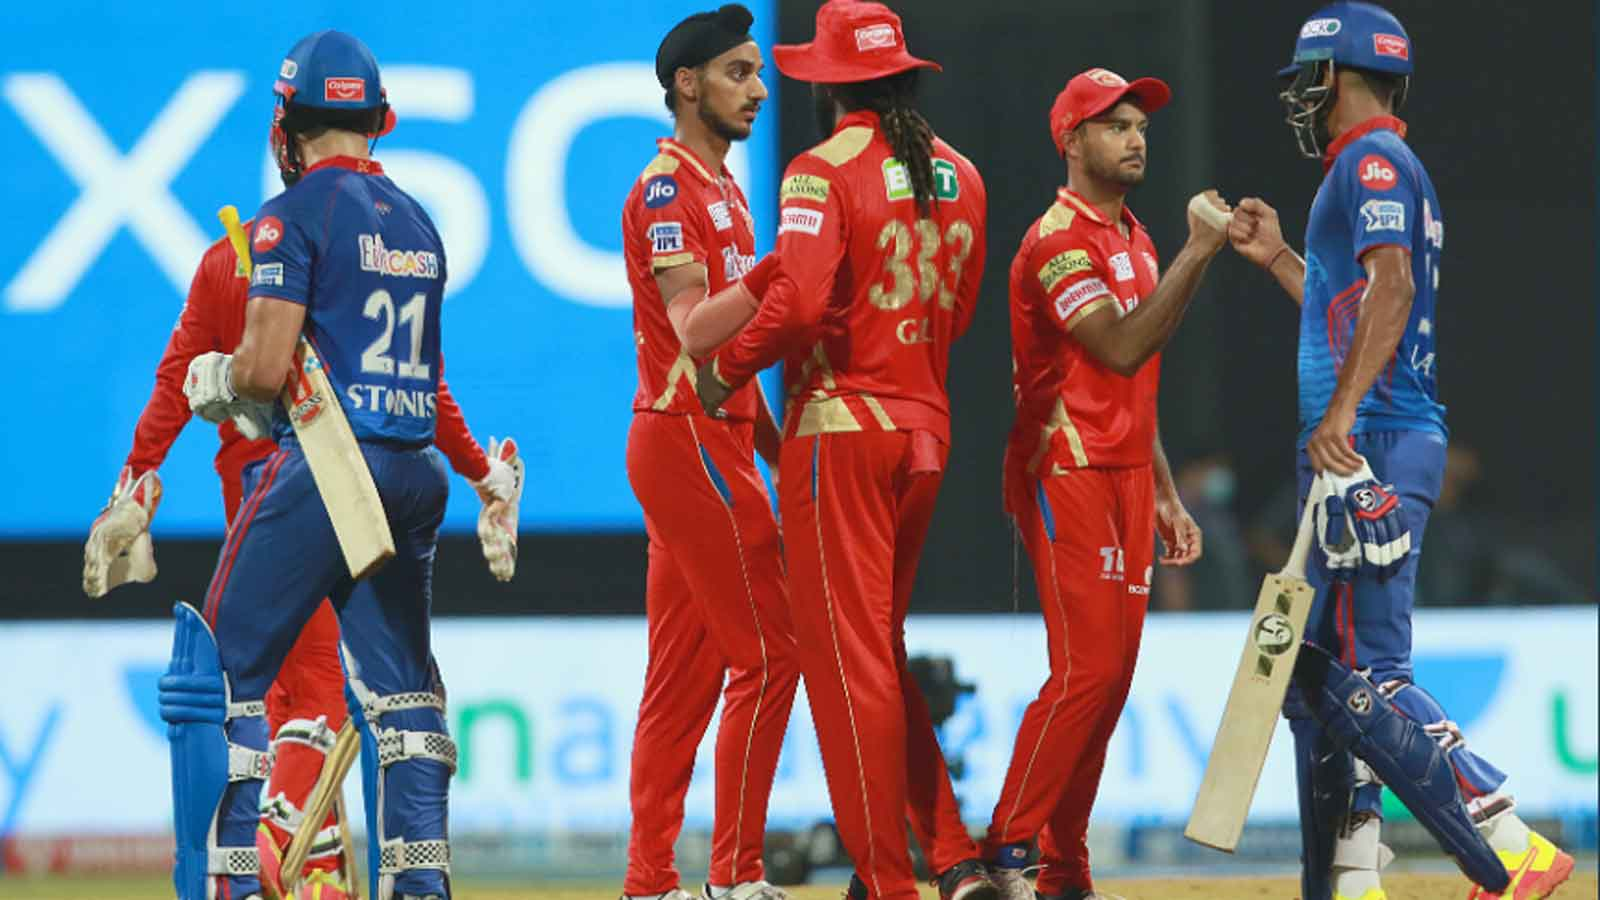 IPL 2021: Delhi Capitals beat Punjab Kings by 6 wickets